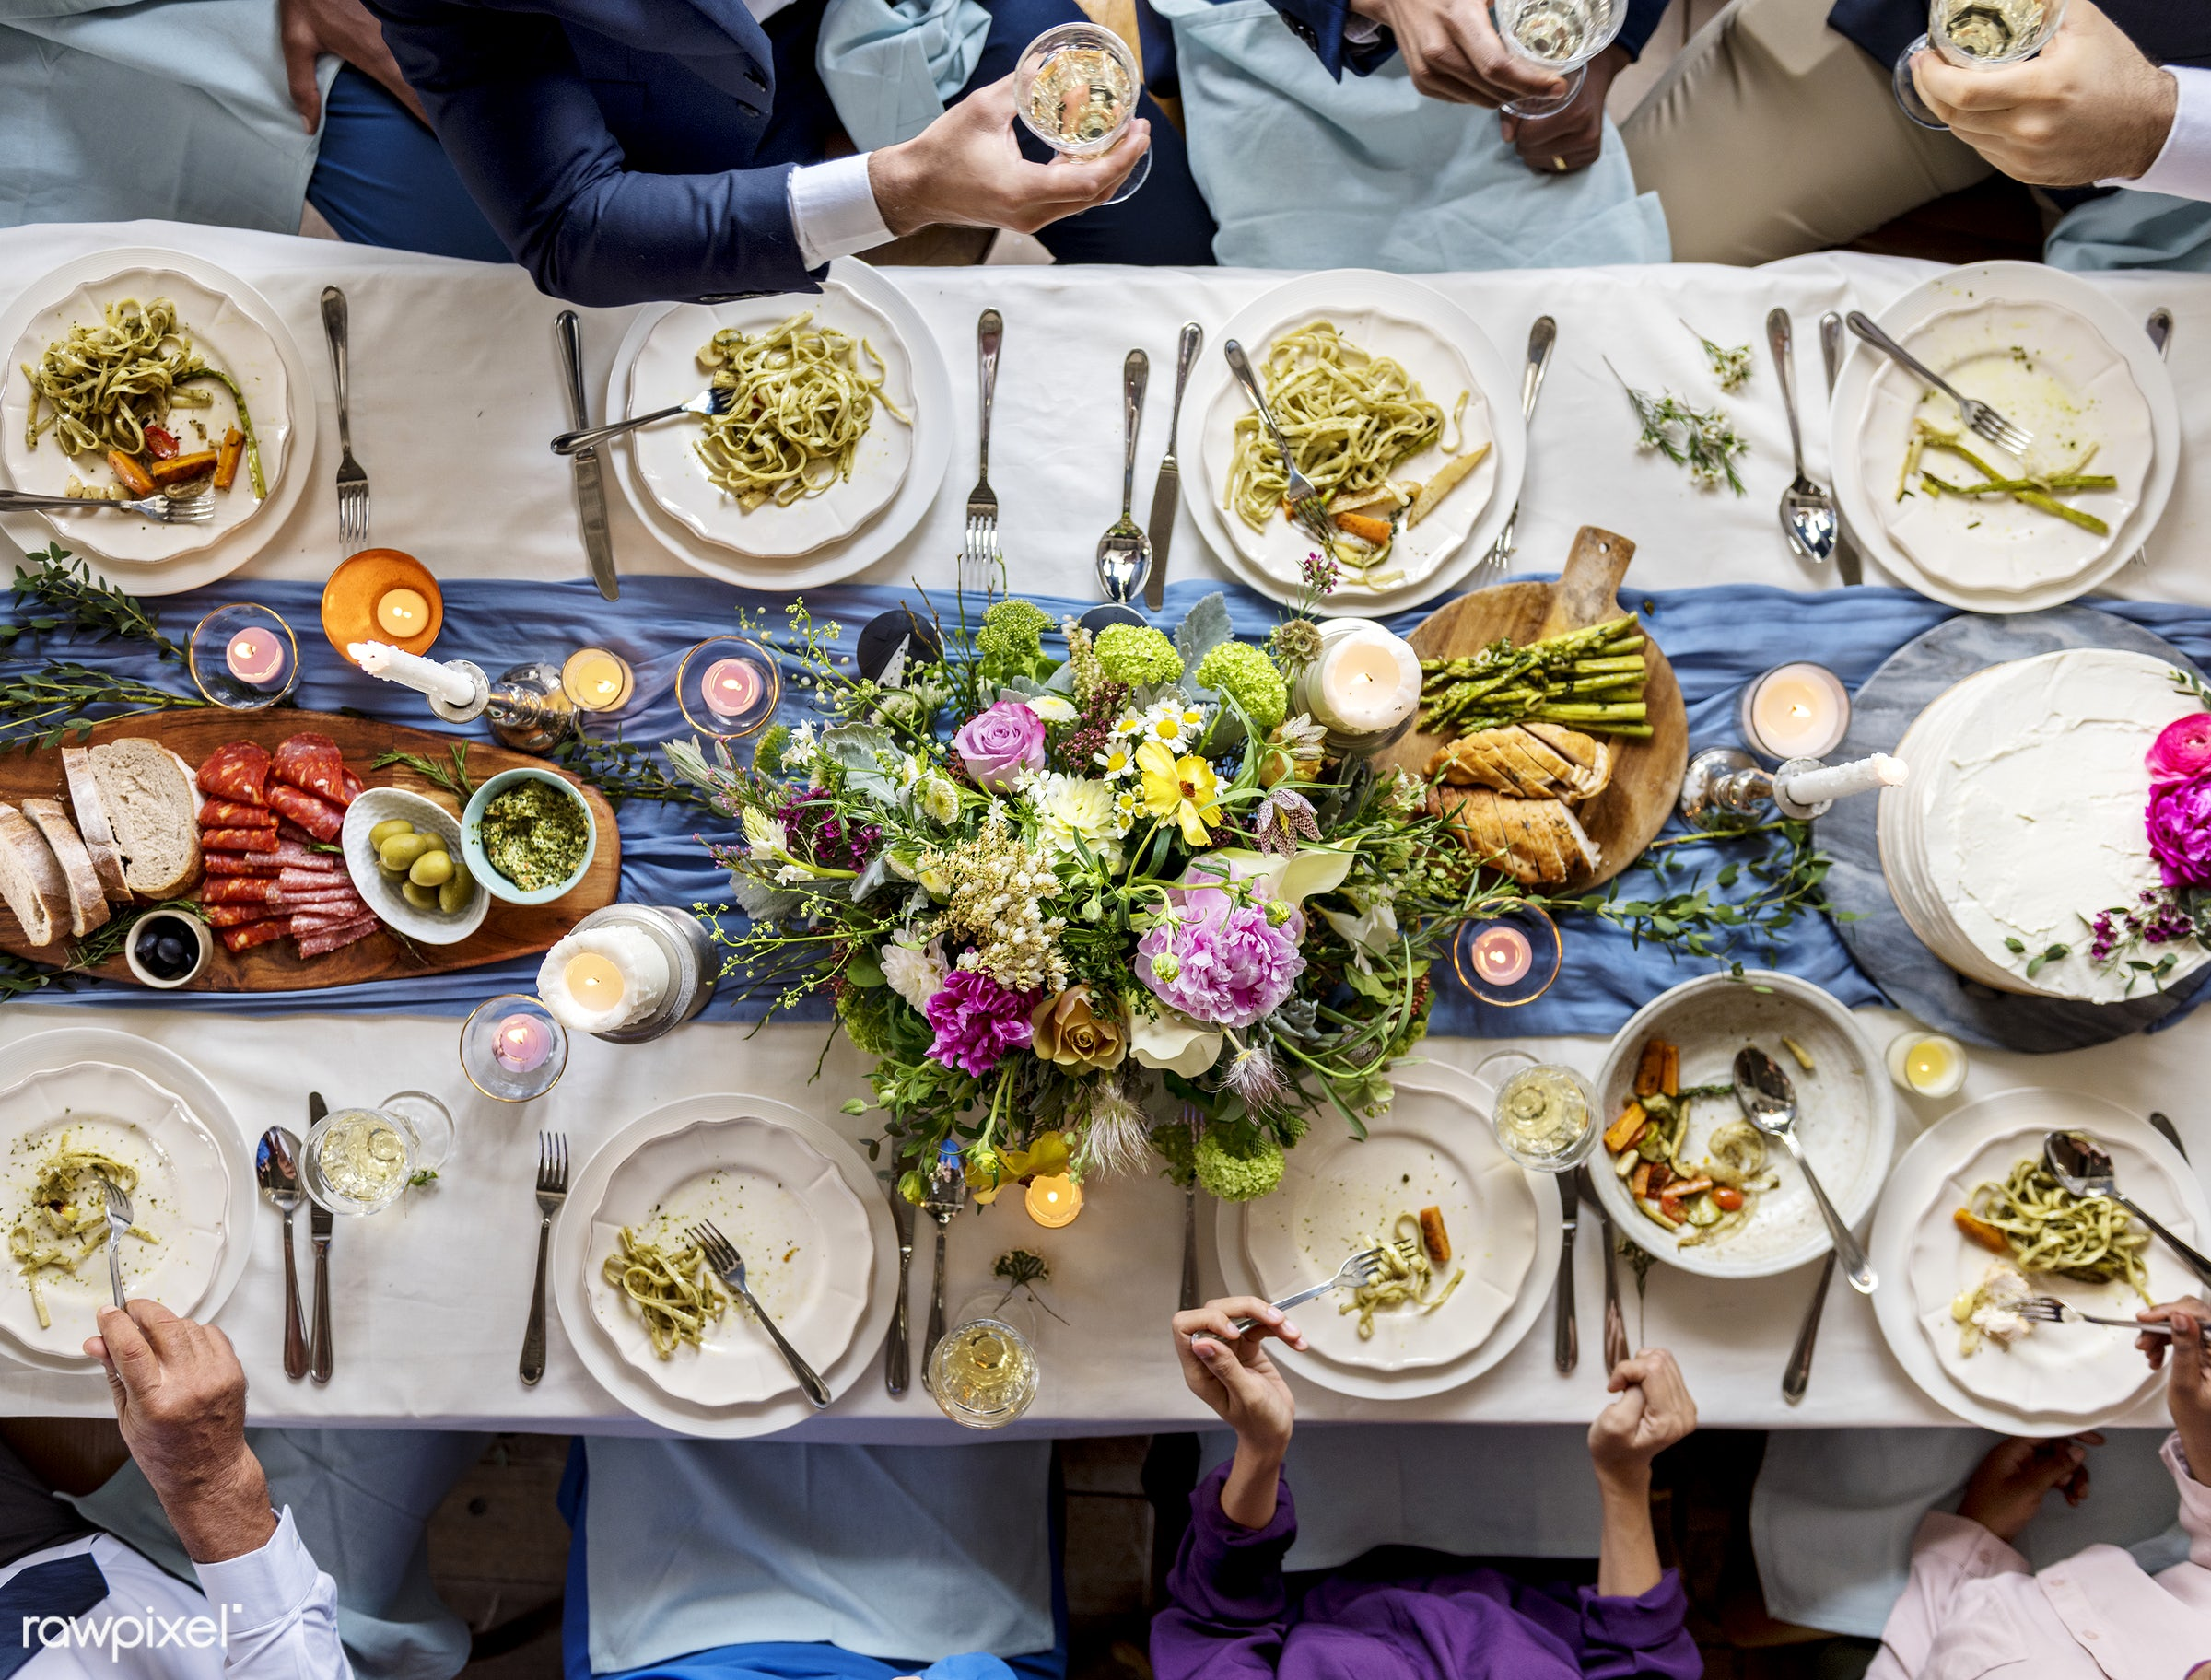 Aerial view of wedding reception table at dinner - aerial view, celebration, dining, dinner, eating, event, flowers, food,...